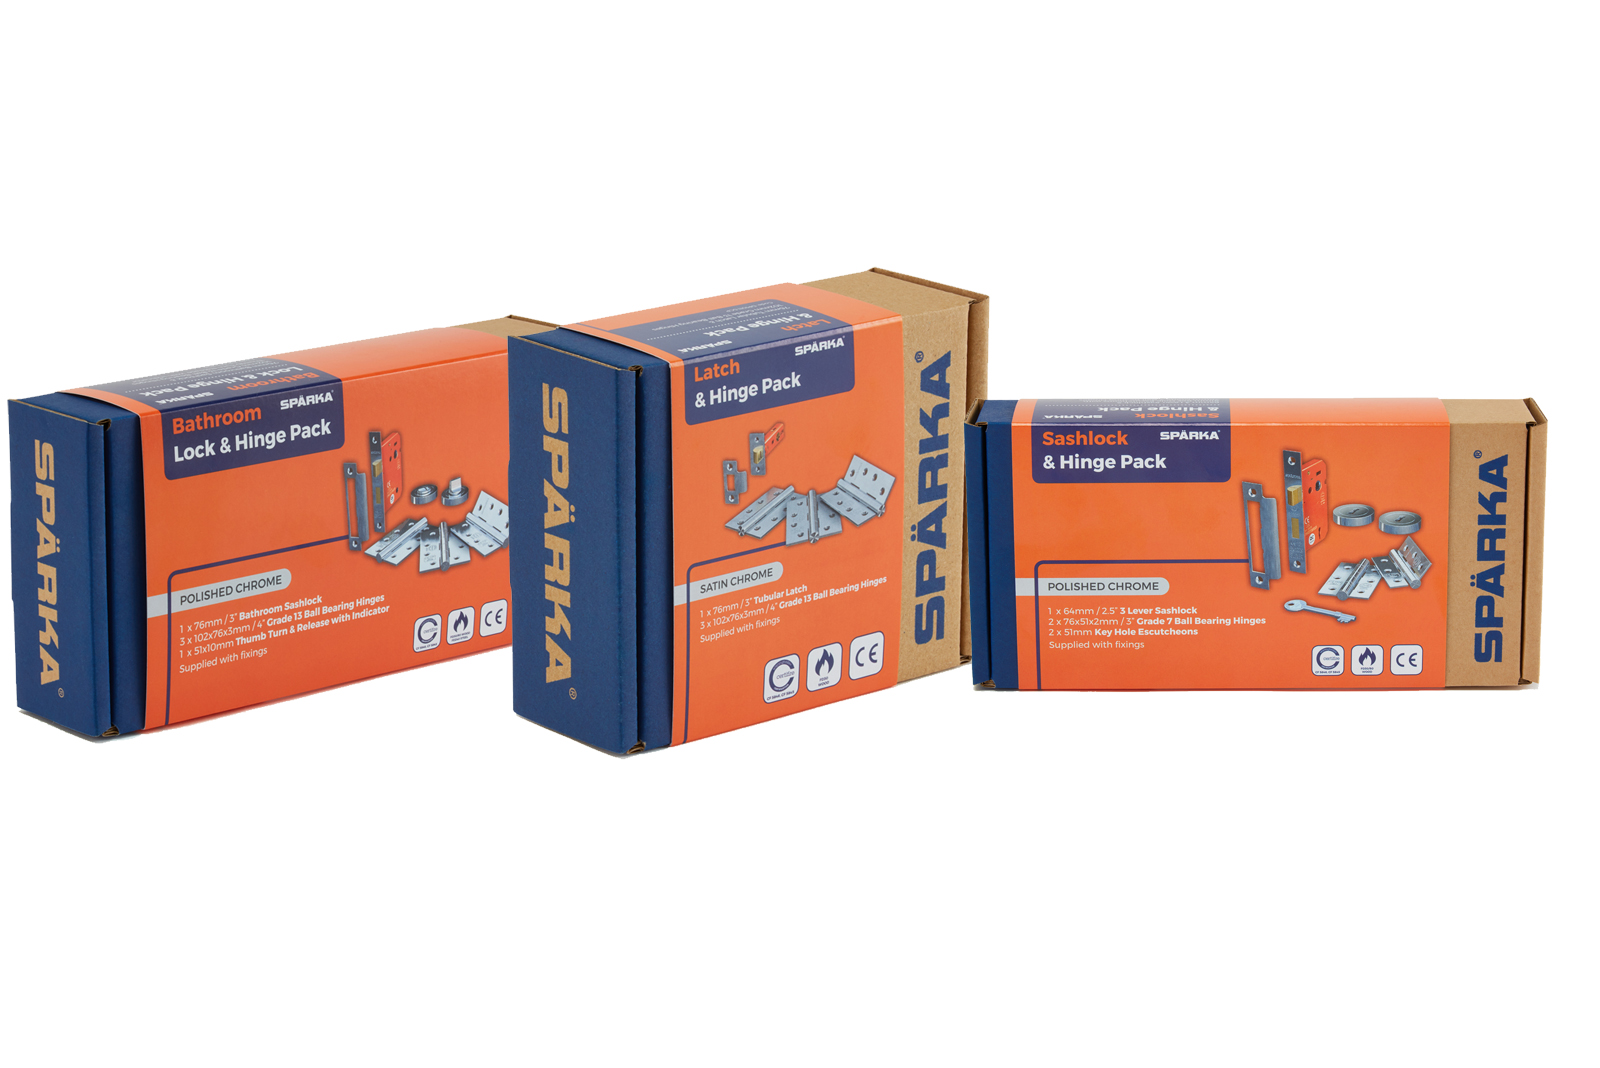 5 bundles of 3 Spärka door hardware packs to win